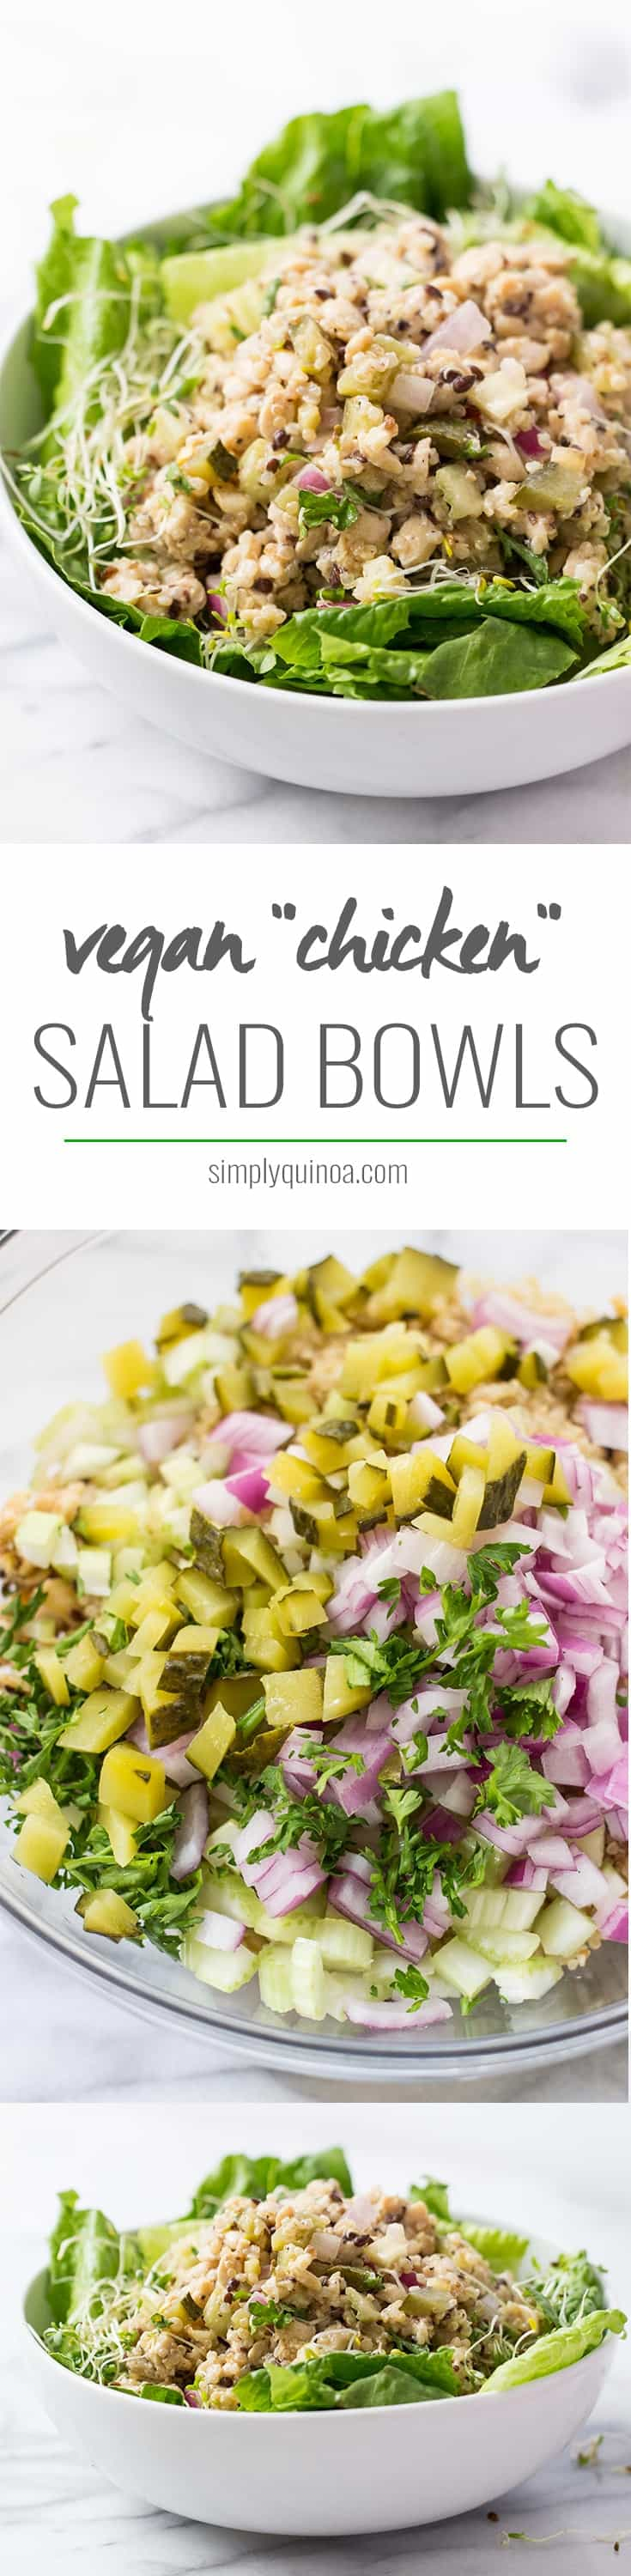 VEGAN 'CHICKEN' SALAD BOWLS! the perfect weeknight dinner or office lunch. Can be made in big batches and enjoyed all week long!